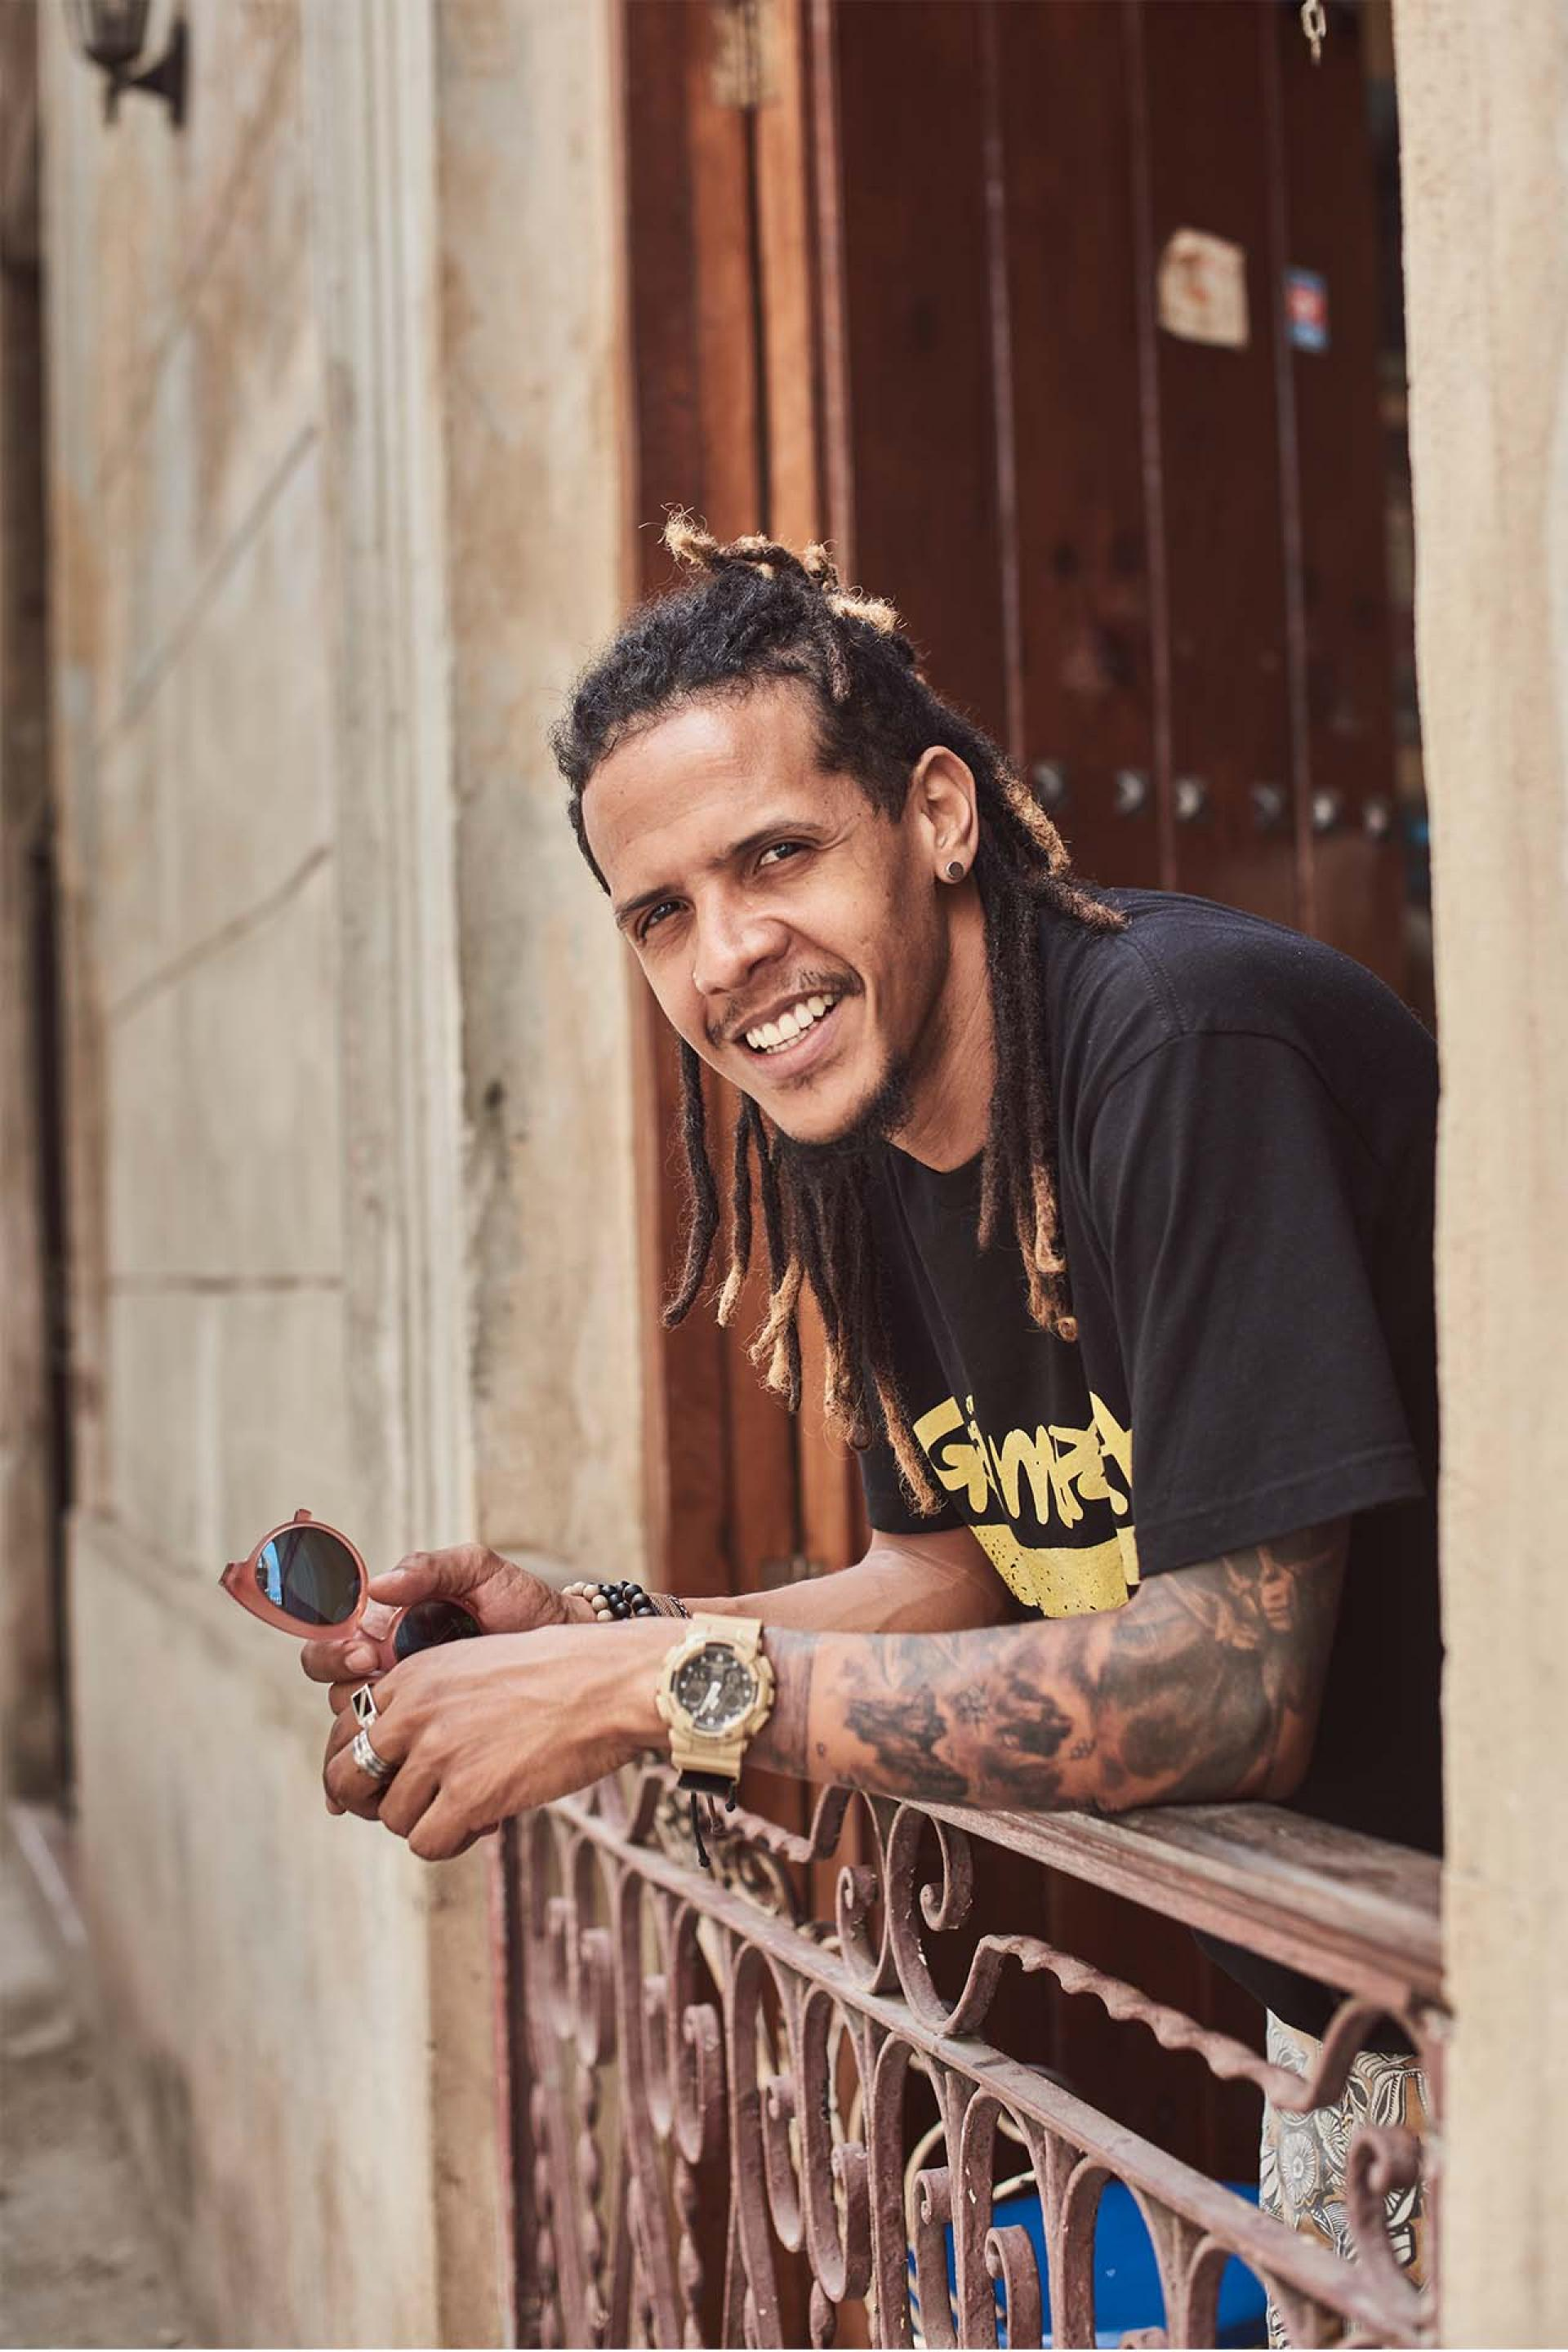 El Individuo, a Latin jazz and Cuban swing-influenced 'poetic rapper